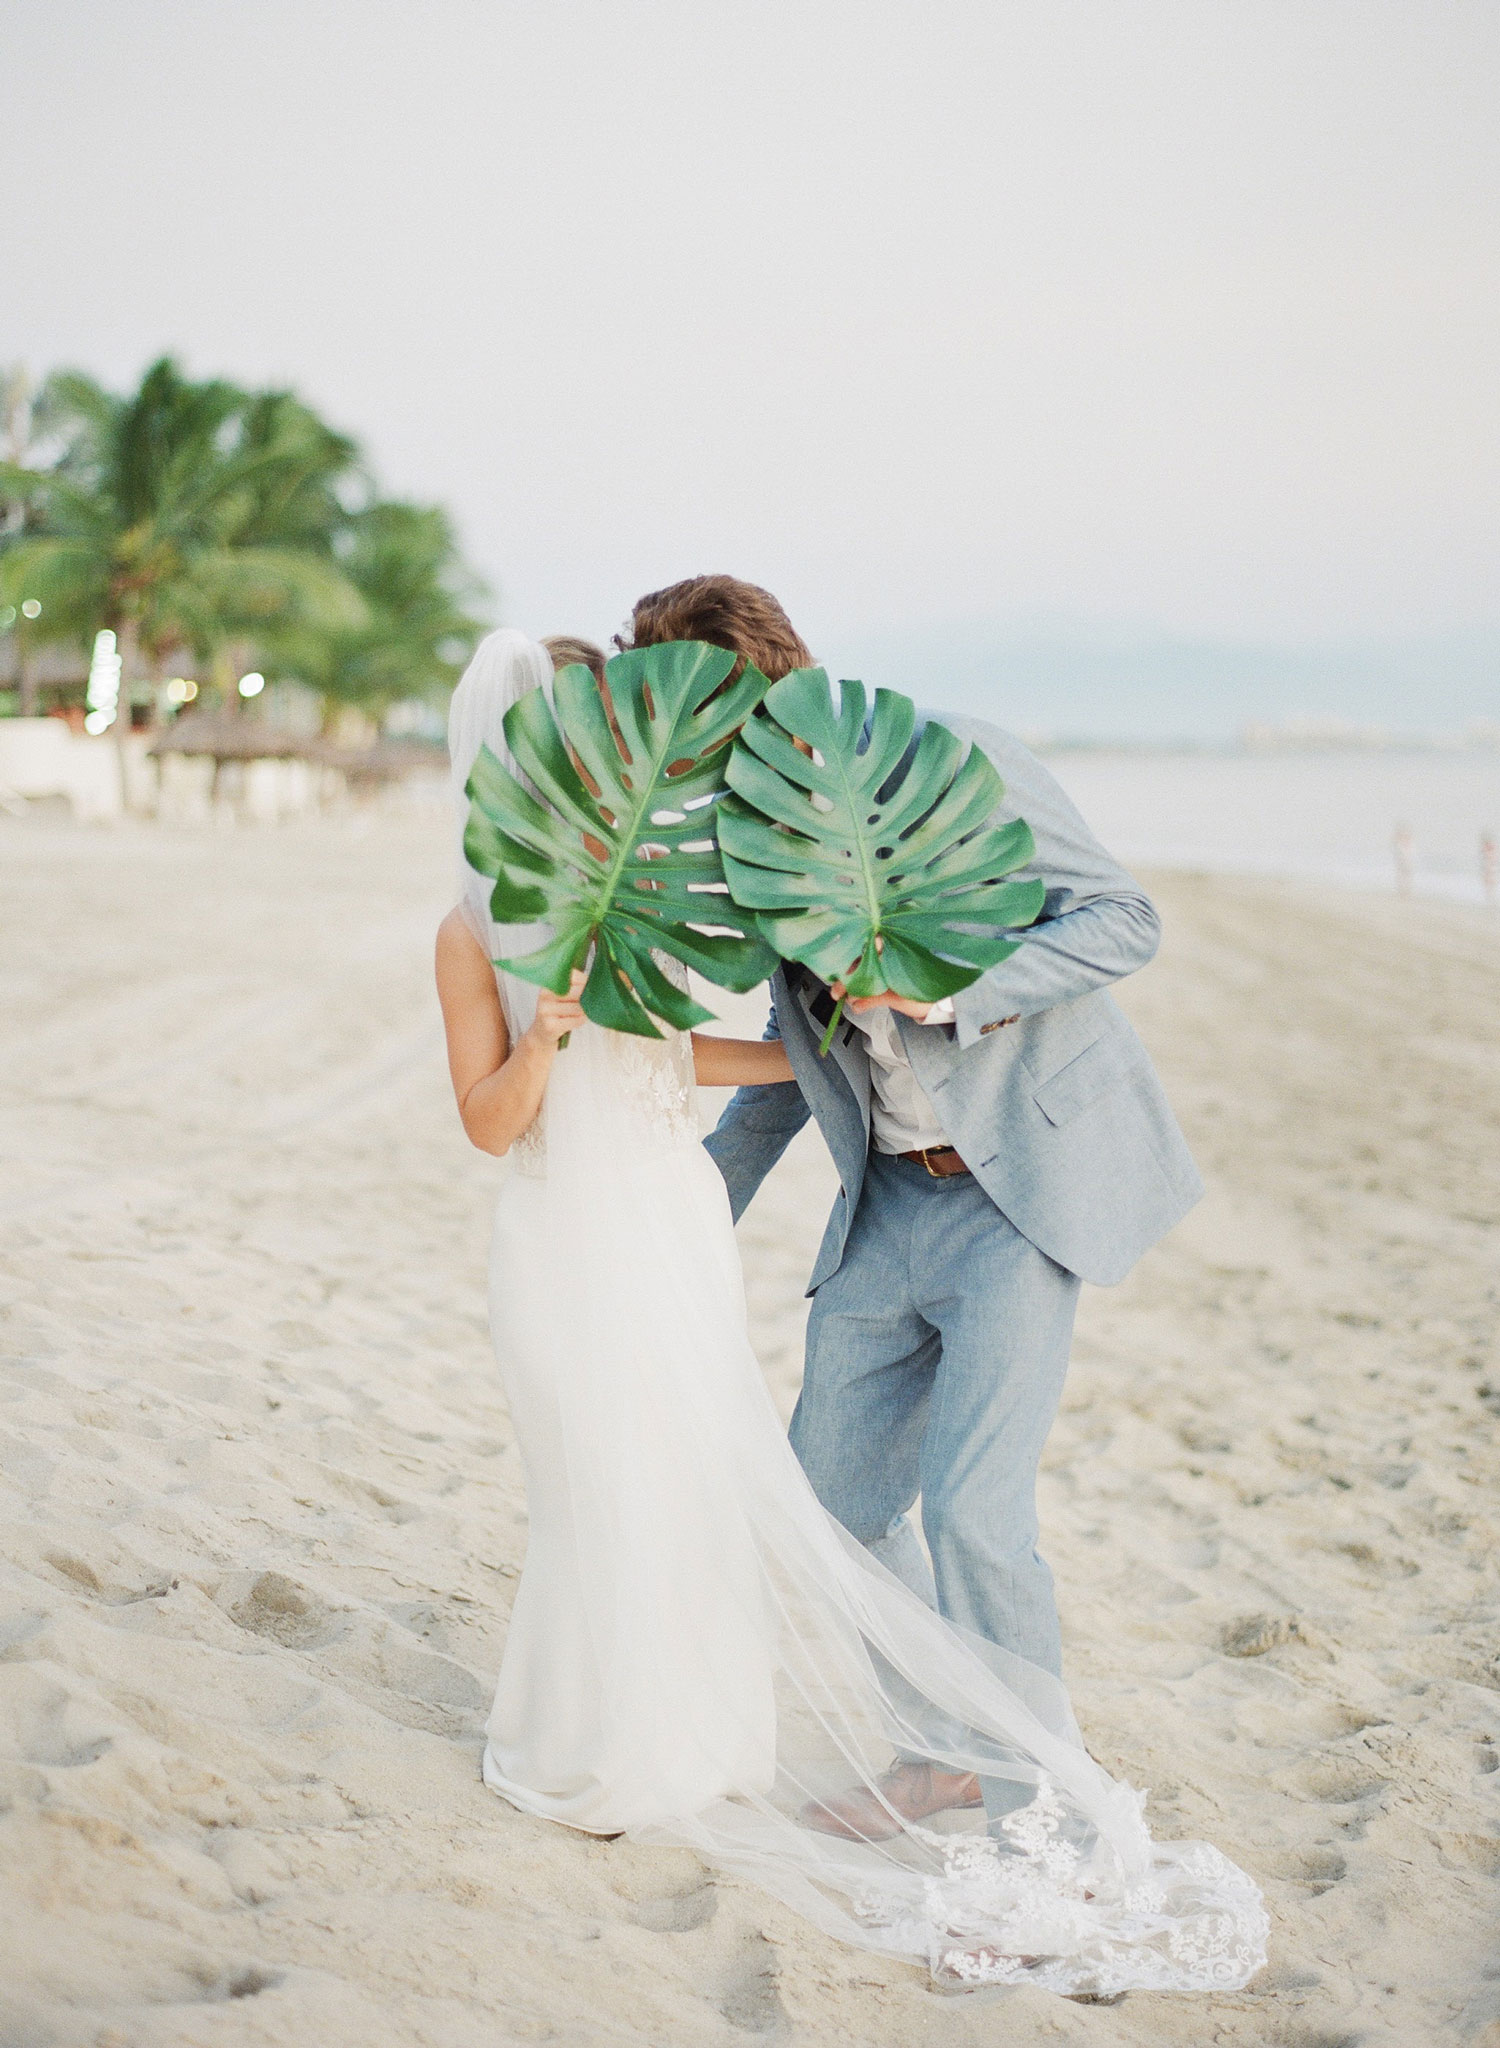 Bride and groom on sand destination wedding with tropical palm frond leaves in face